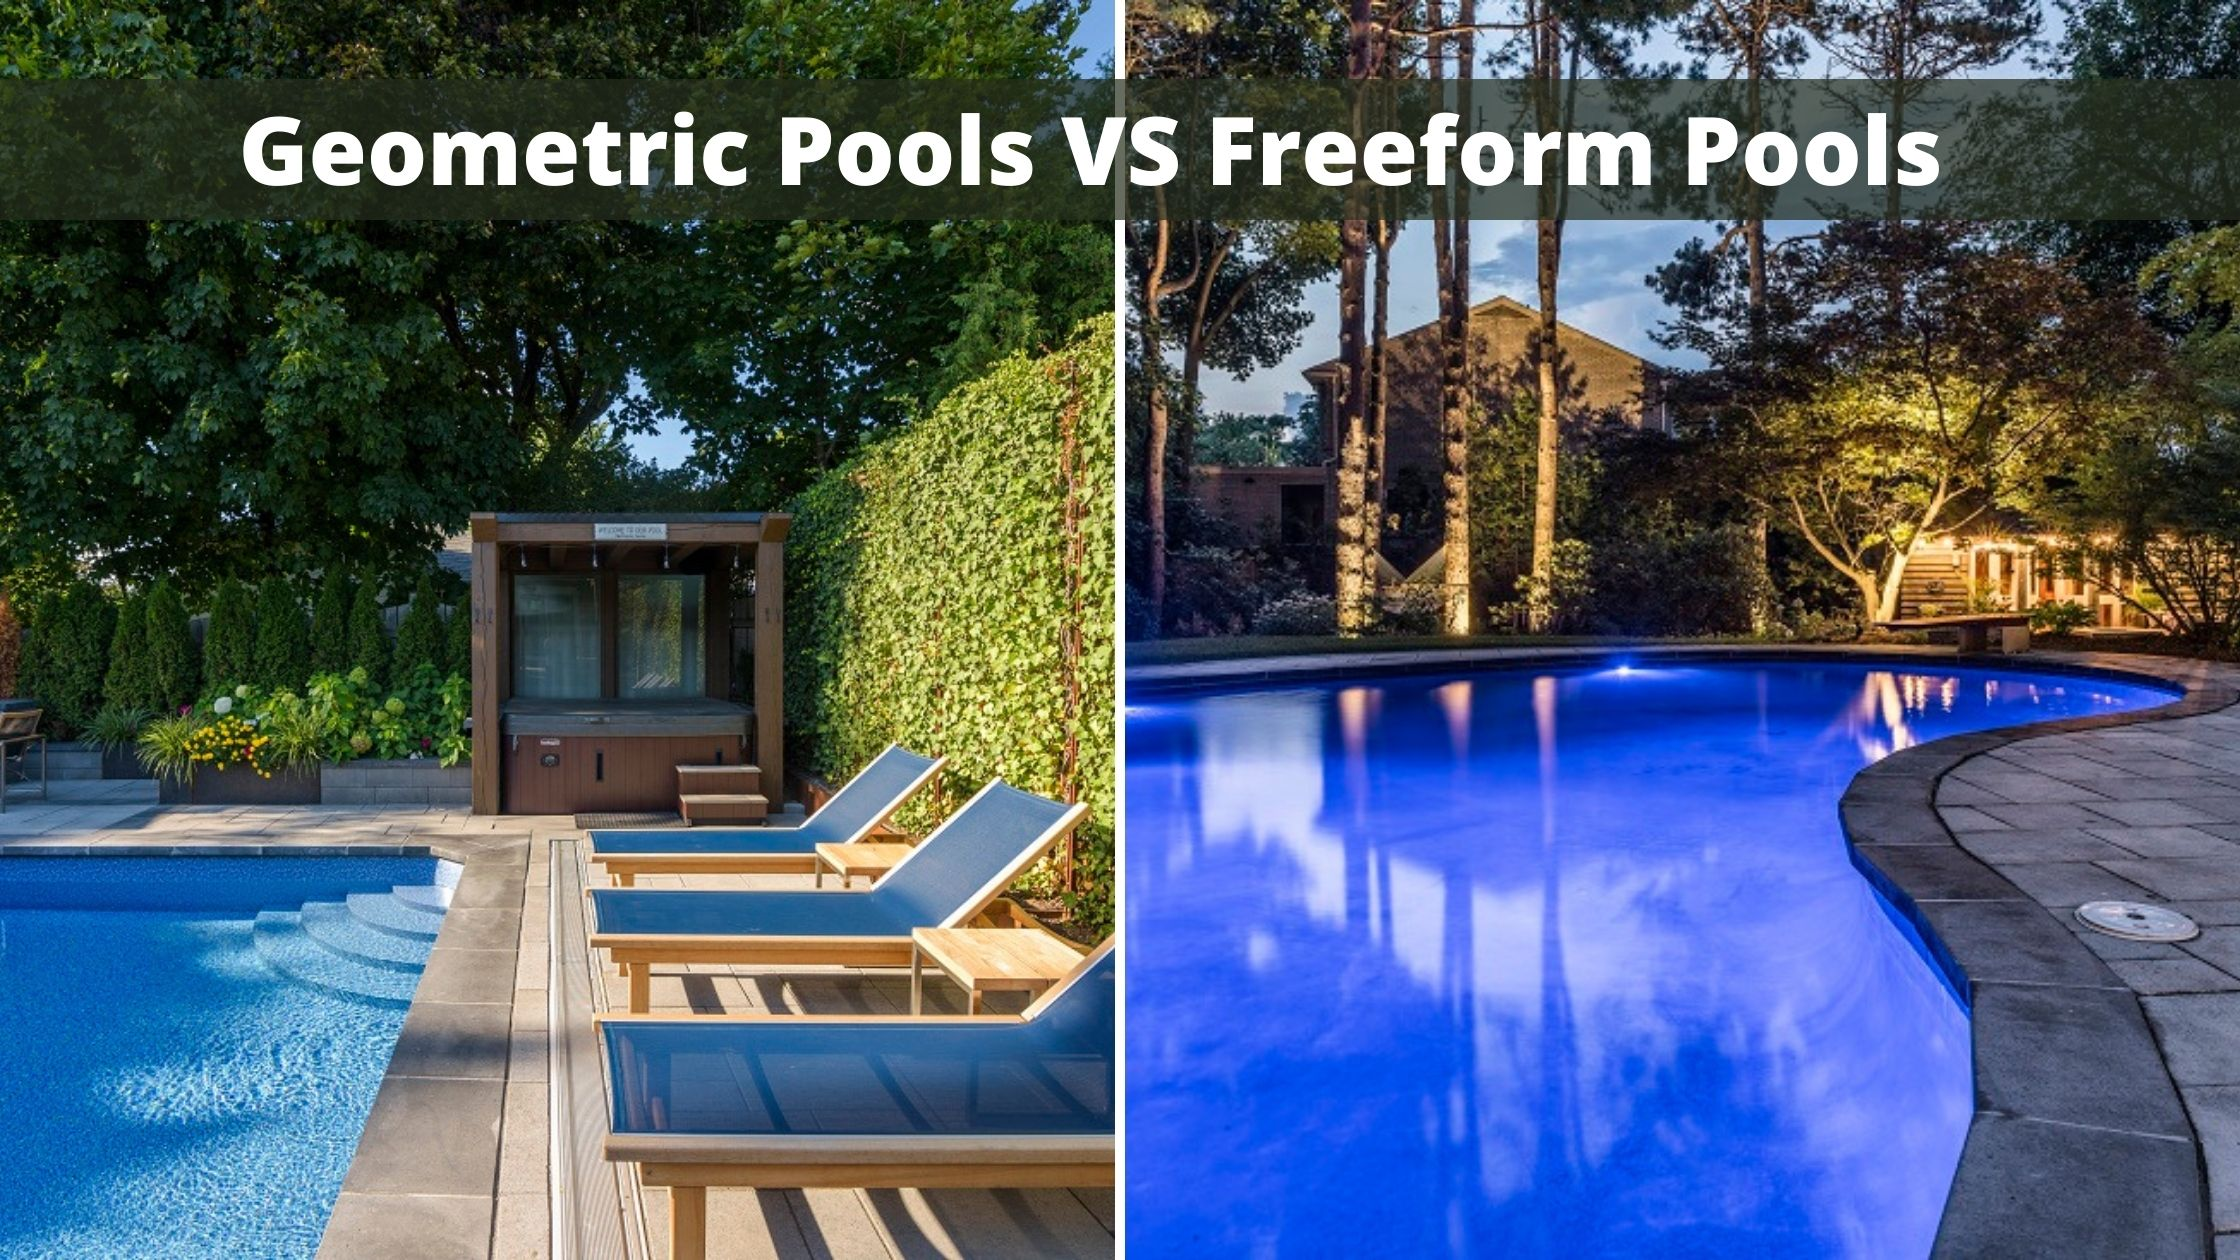 Geometric Pools VS Freeform Pools